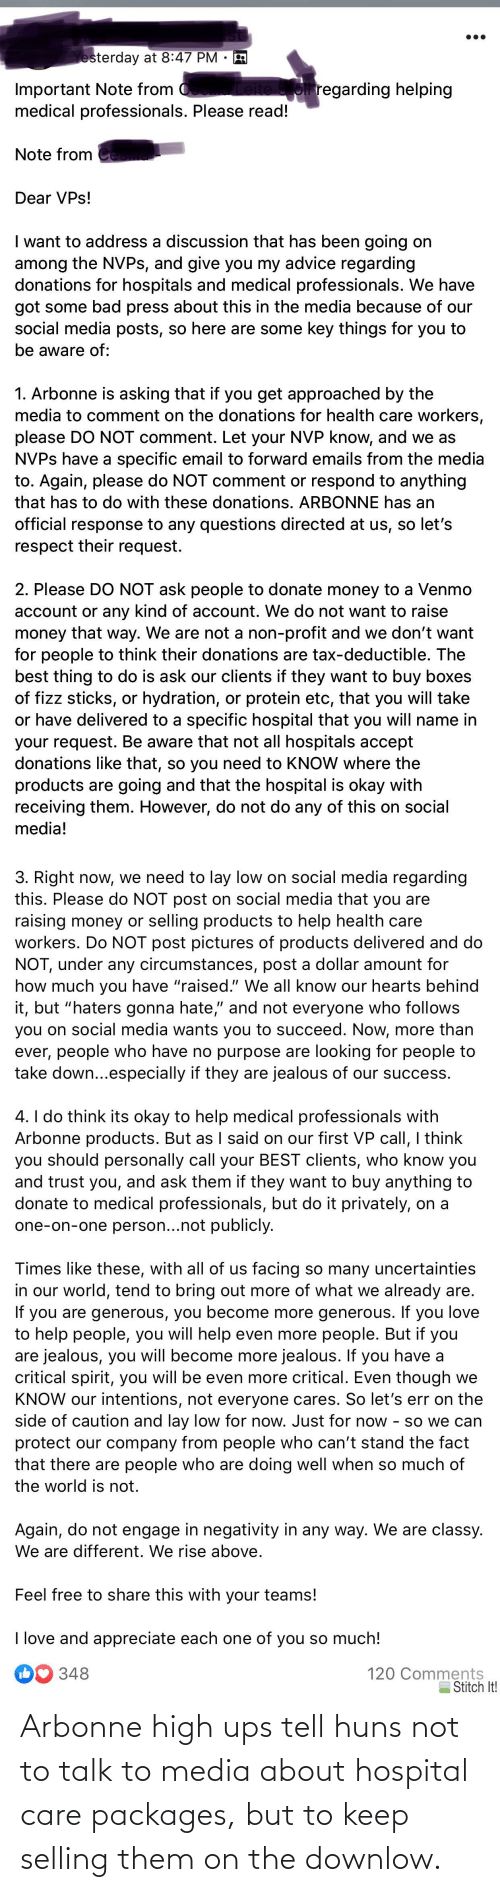 packages: Arbonne high ups tell huns not to talk to media about hospital care packages, but to keep selling them on the downlow.